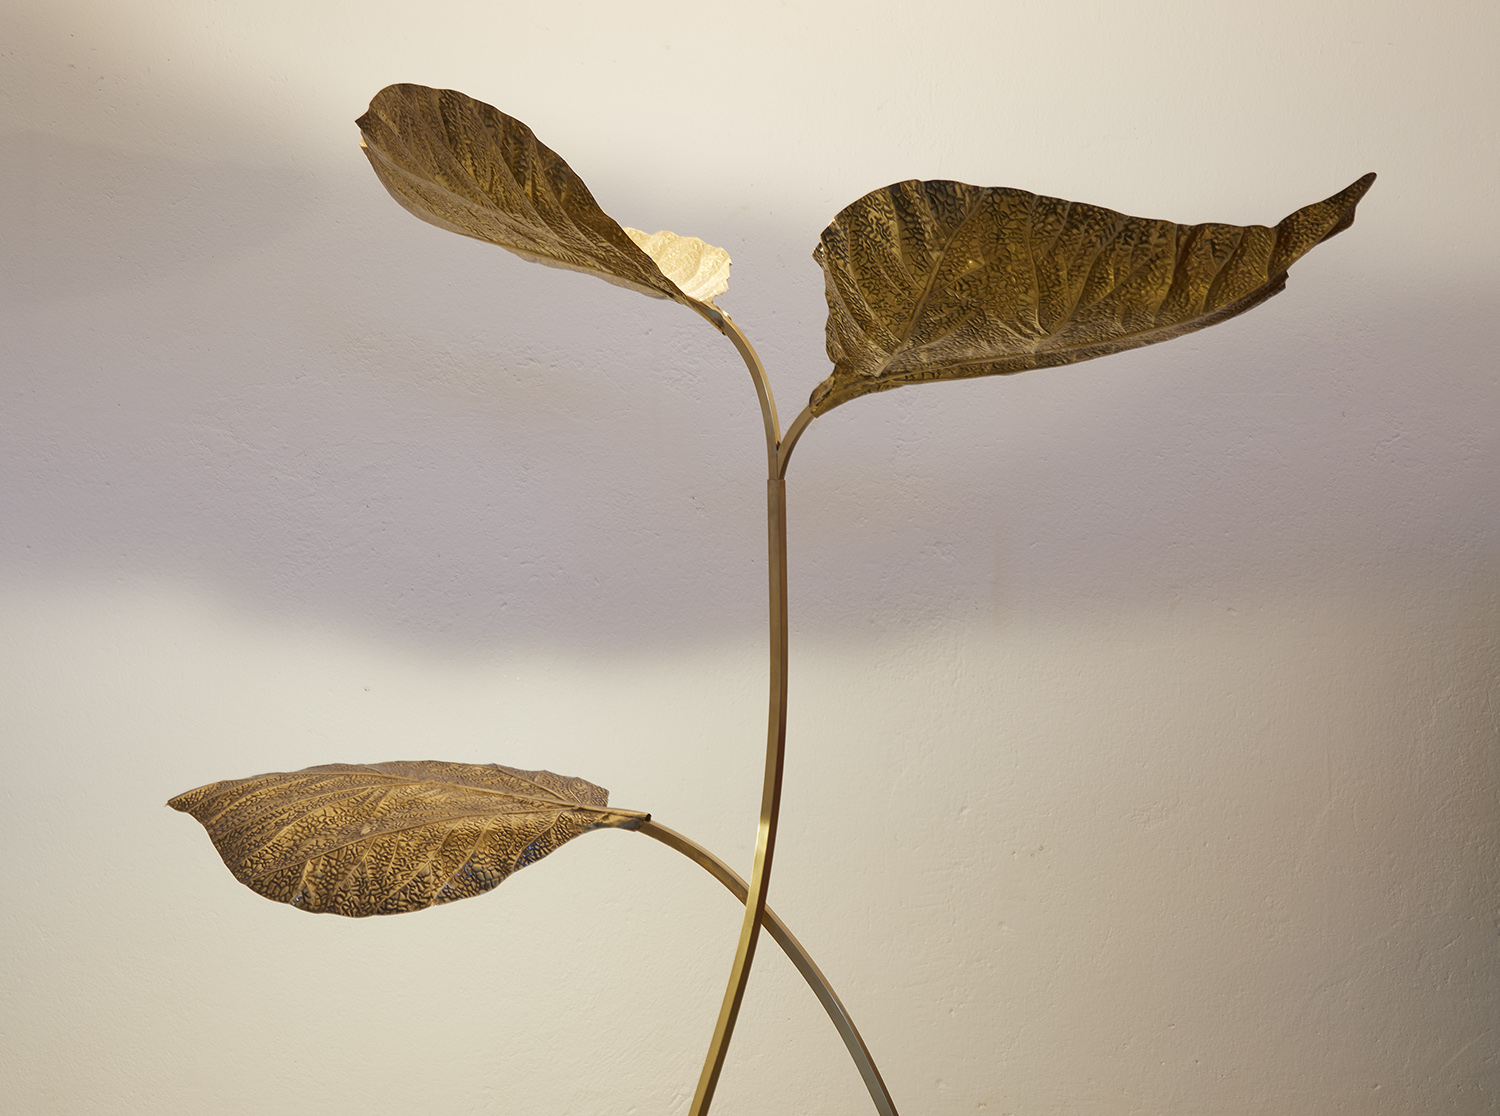 carlo-giorgi-brass-floor-lamp-with-three-leaves-for-bottega-gadda-italy-1970-image-04